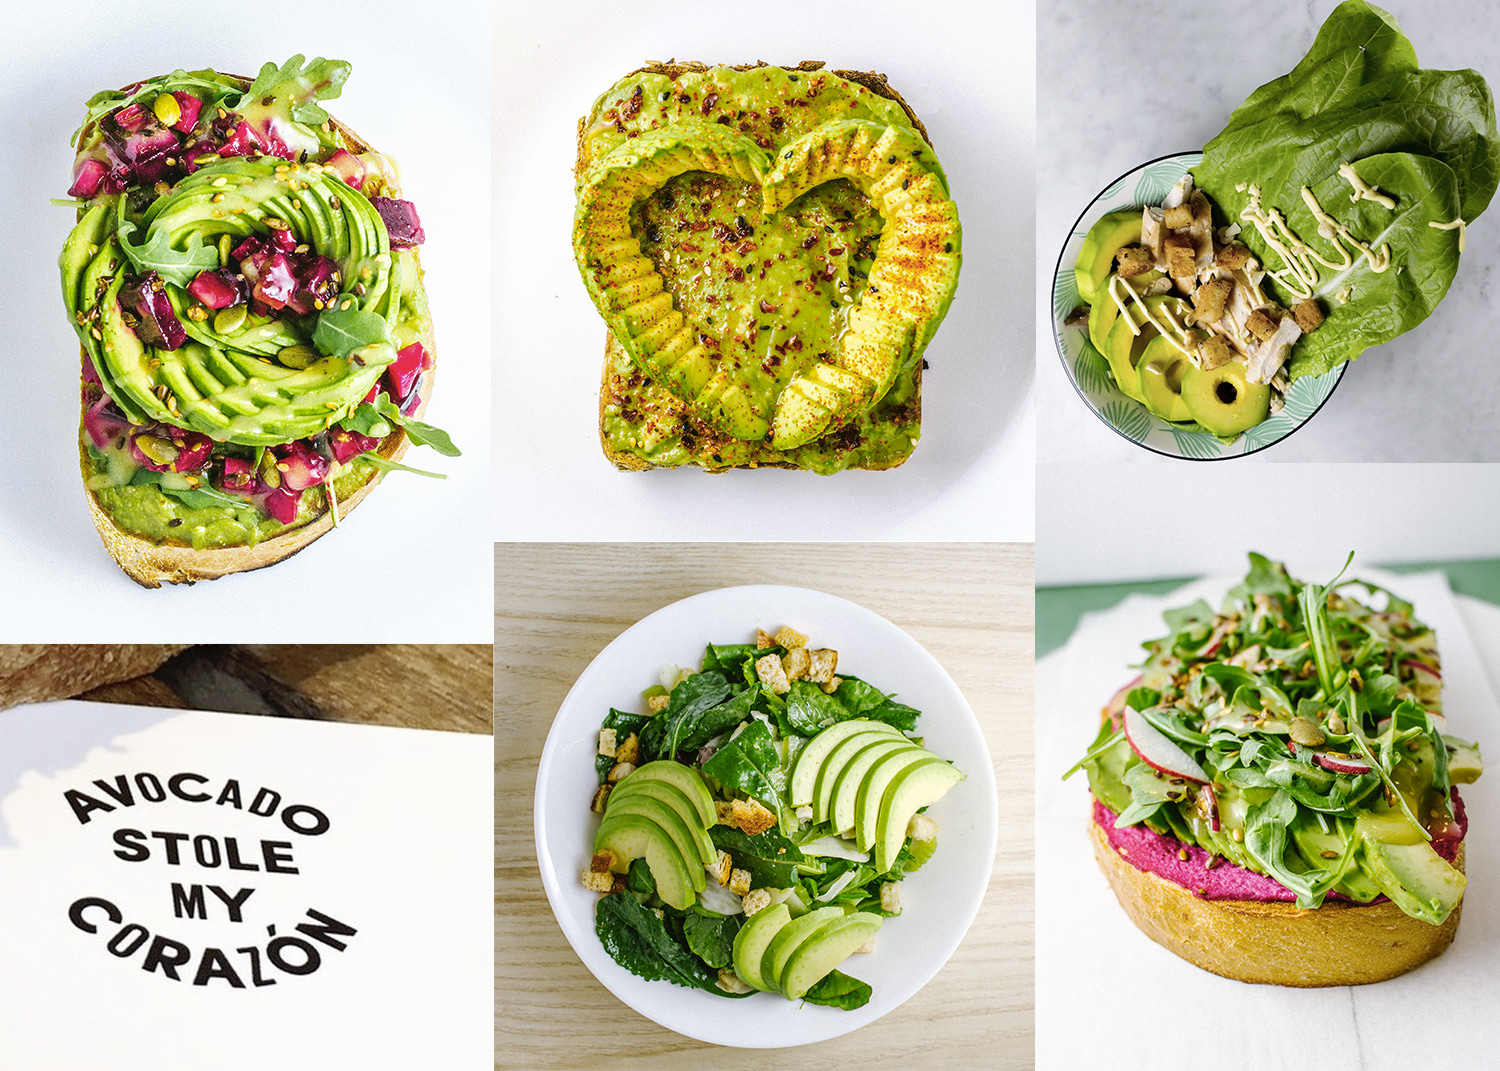 Avocaderia, New York, Avocado, Design, Stile, Ricette